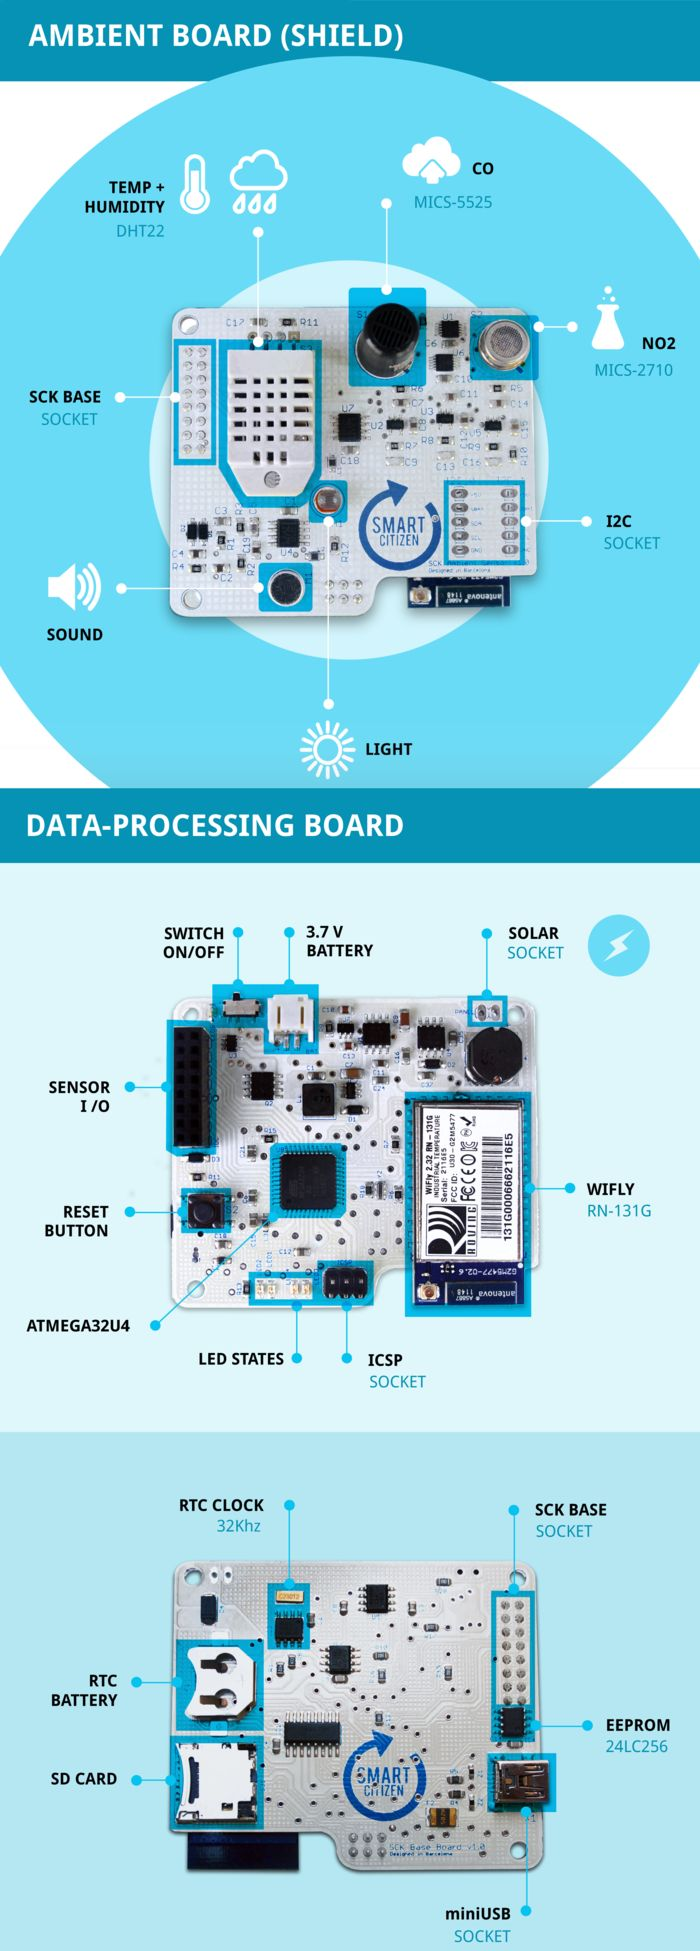 Arduino-based Smart Citizen Kit packs Atmel's ATmega32U4 | Bits & Pieces from the Embedded Design World